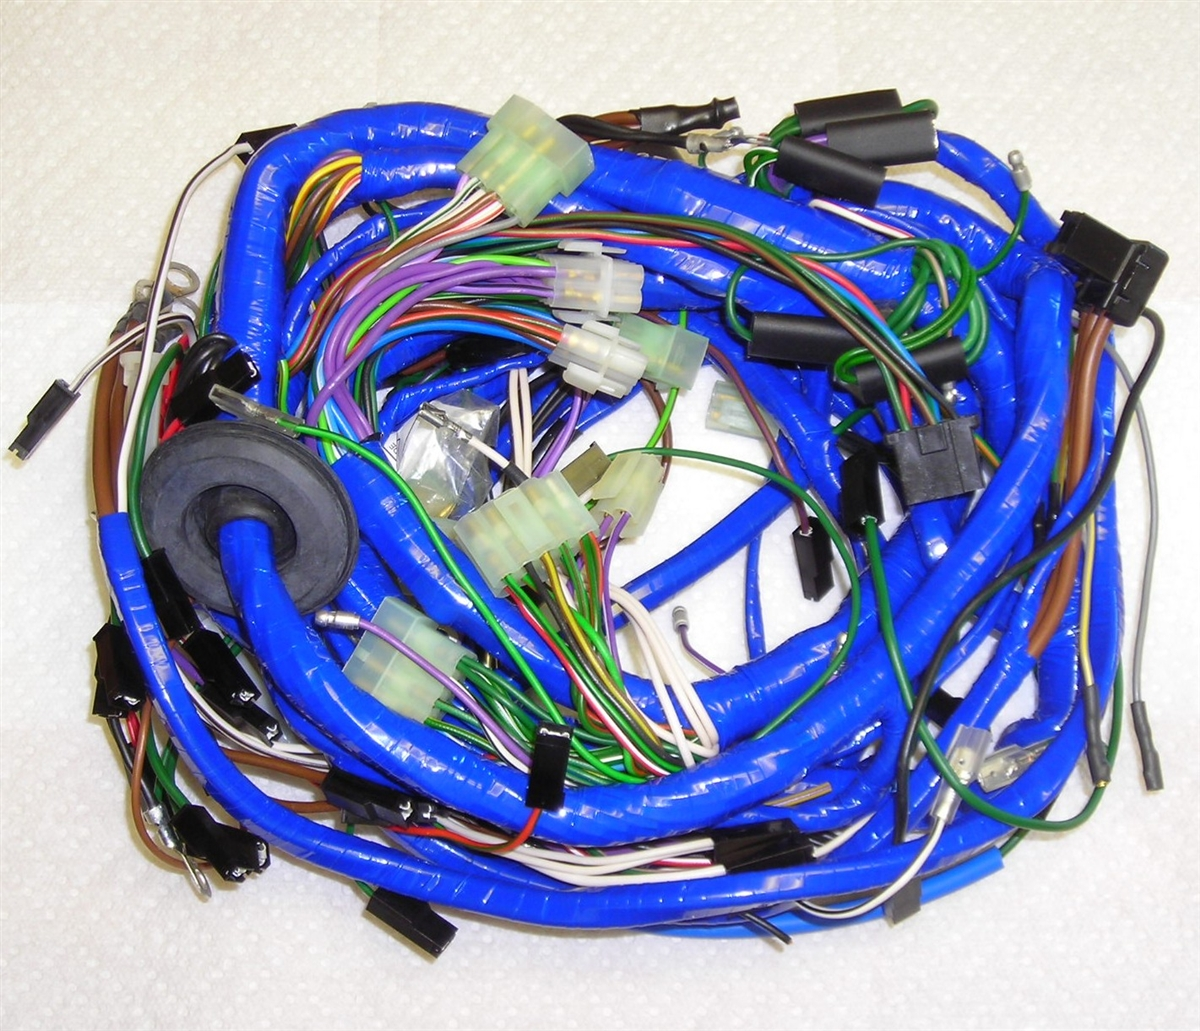 74 Mgb Wire Harness | Wiring Diagram Mgb Wiring Harness Routing on